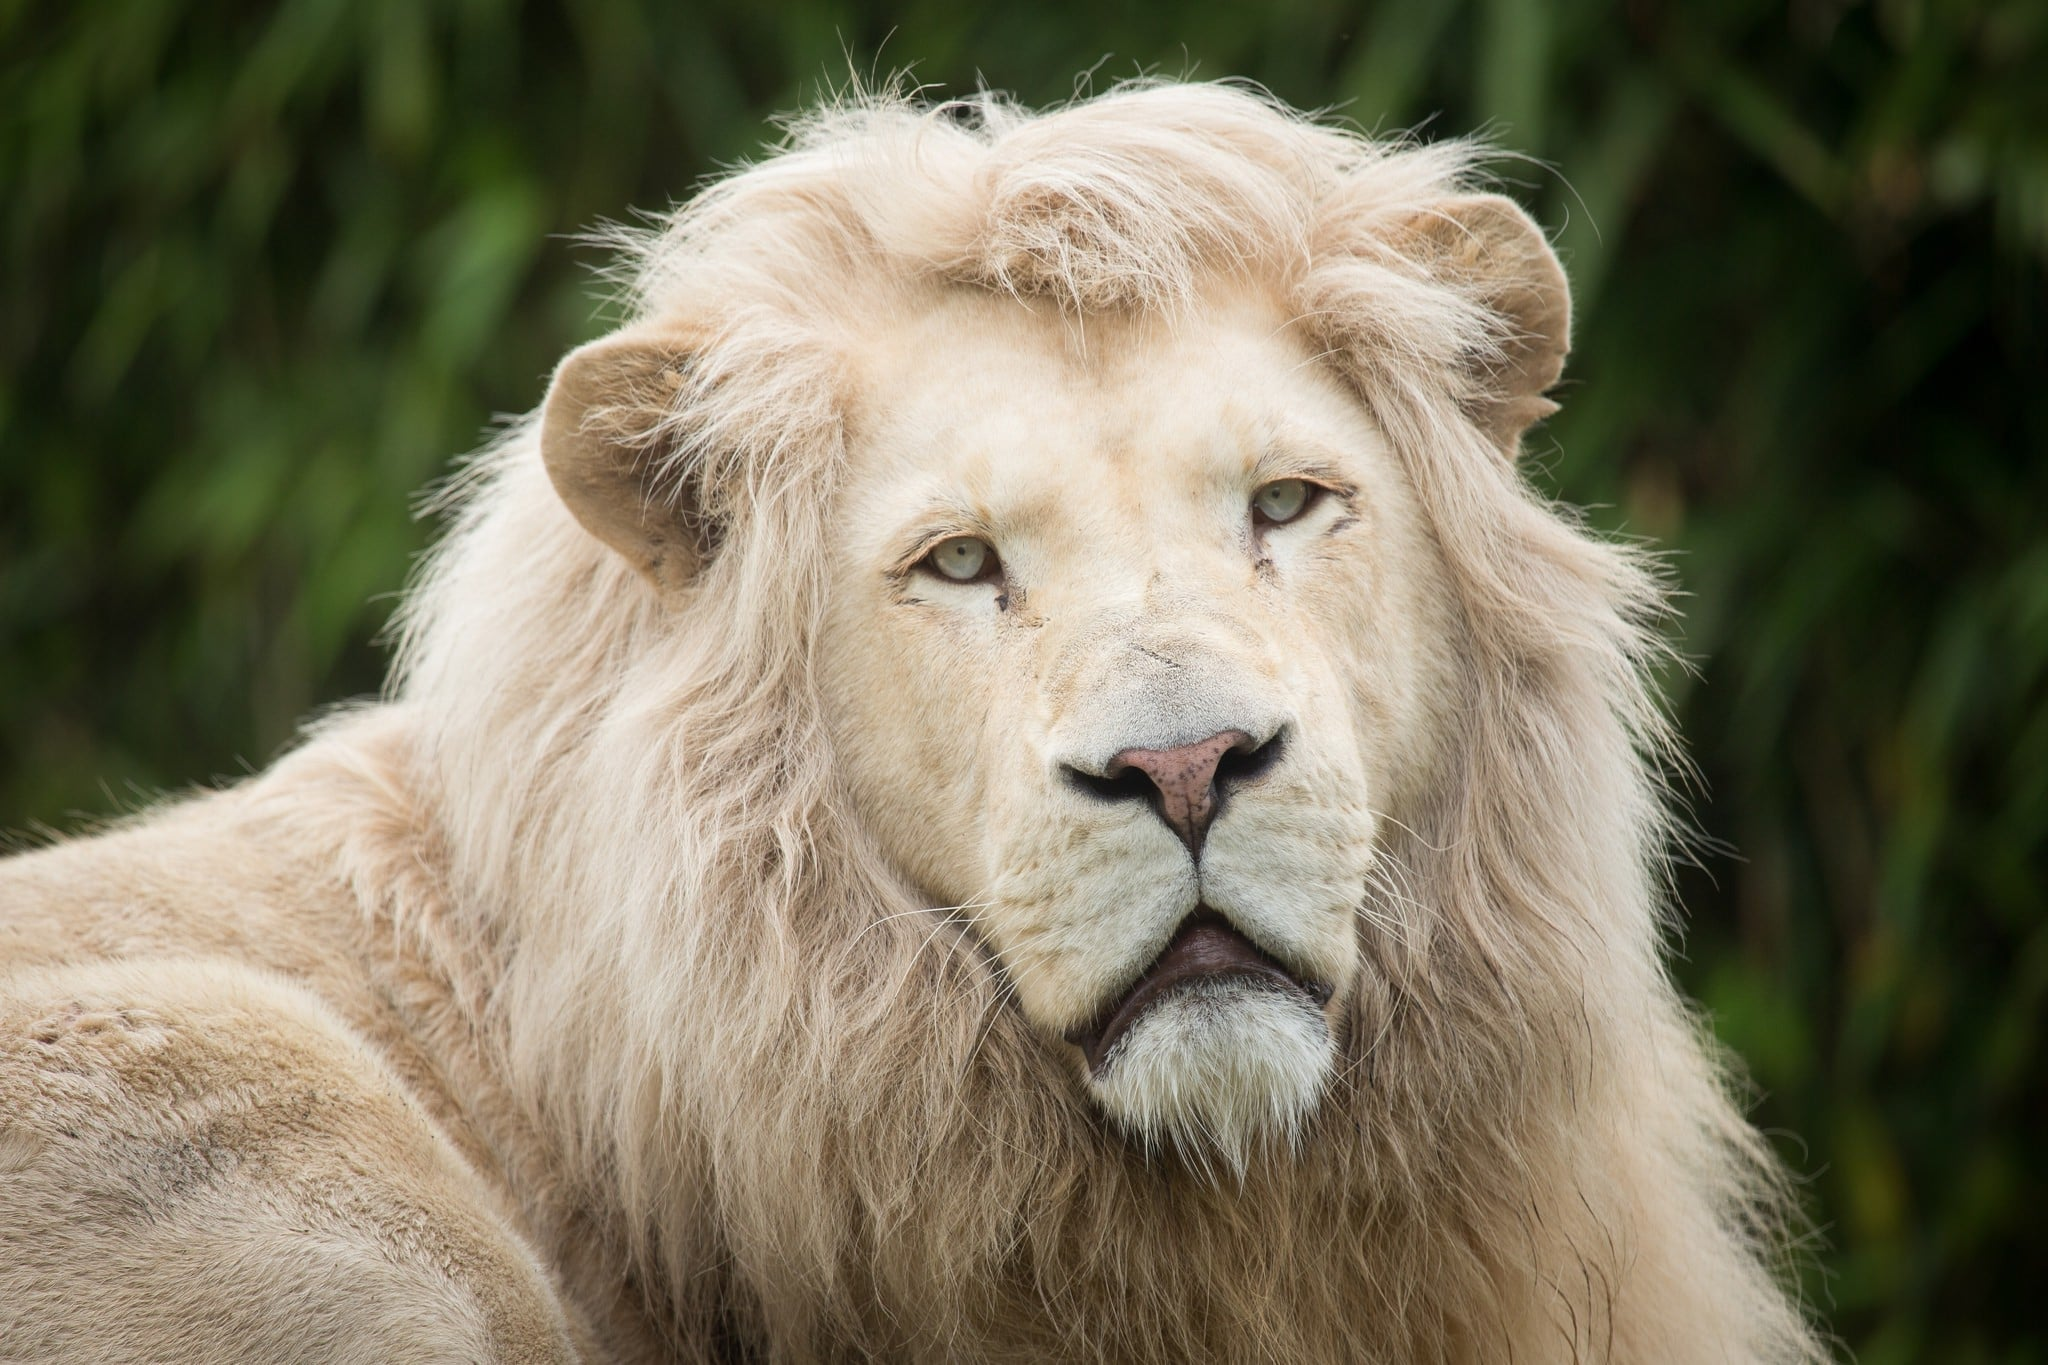 White Lion face wallpaper 1080p